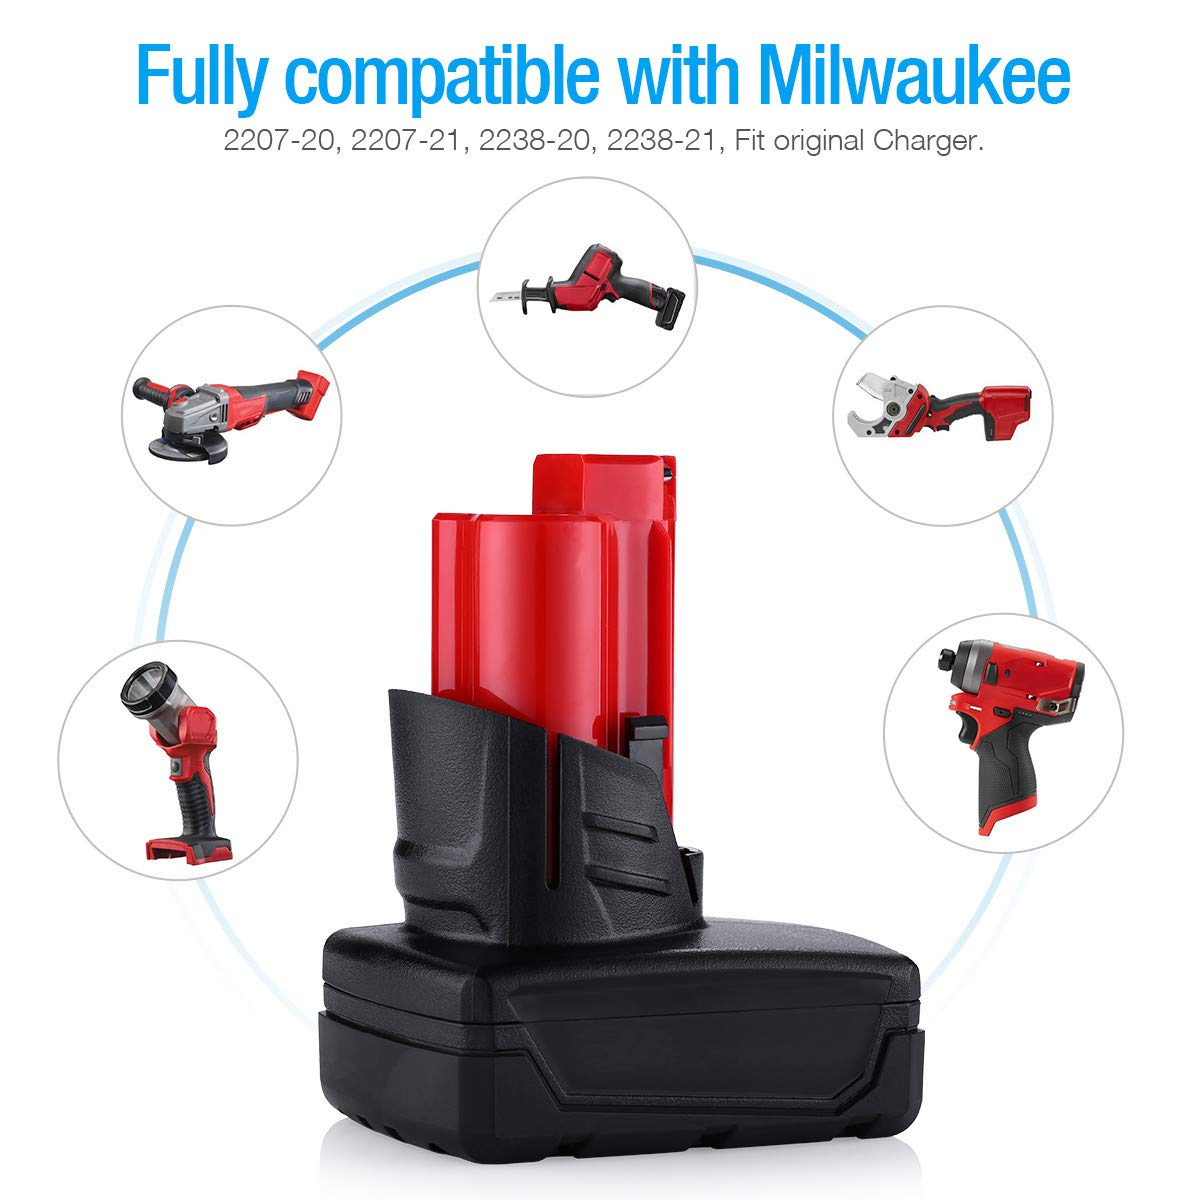 {Upgraded}Powerextra 6.0Ah 12V Lithium-ion Replacement Battery Compatible with Milwaukee M12 Milwaukee 48-11-2411 Lithium 12-Volt Cordless Milwaukee Tools,2 Pack